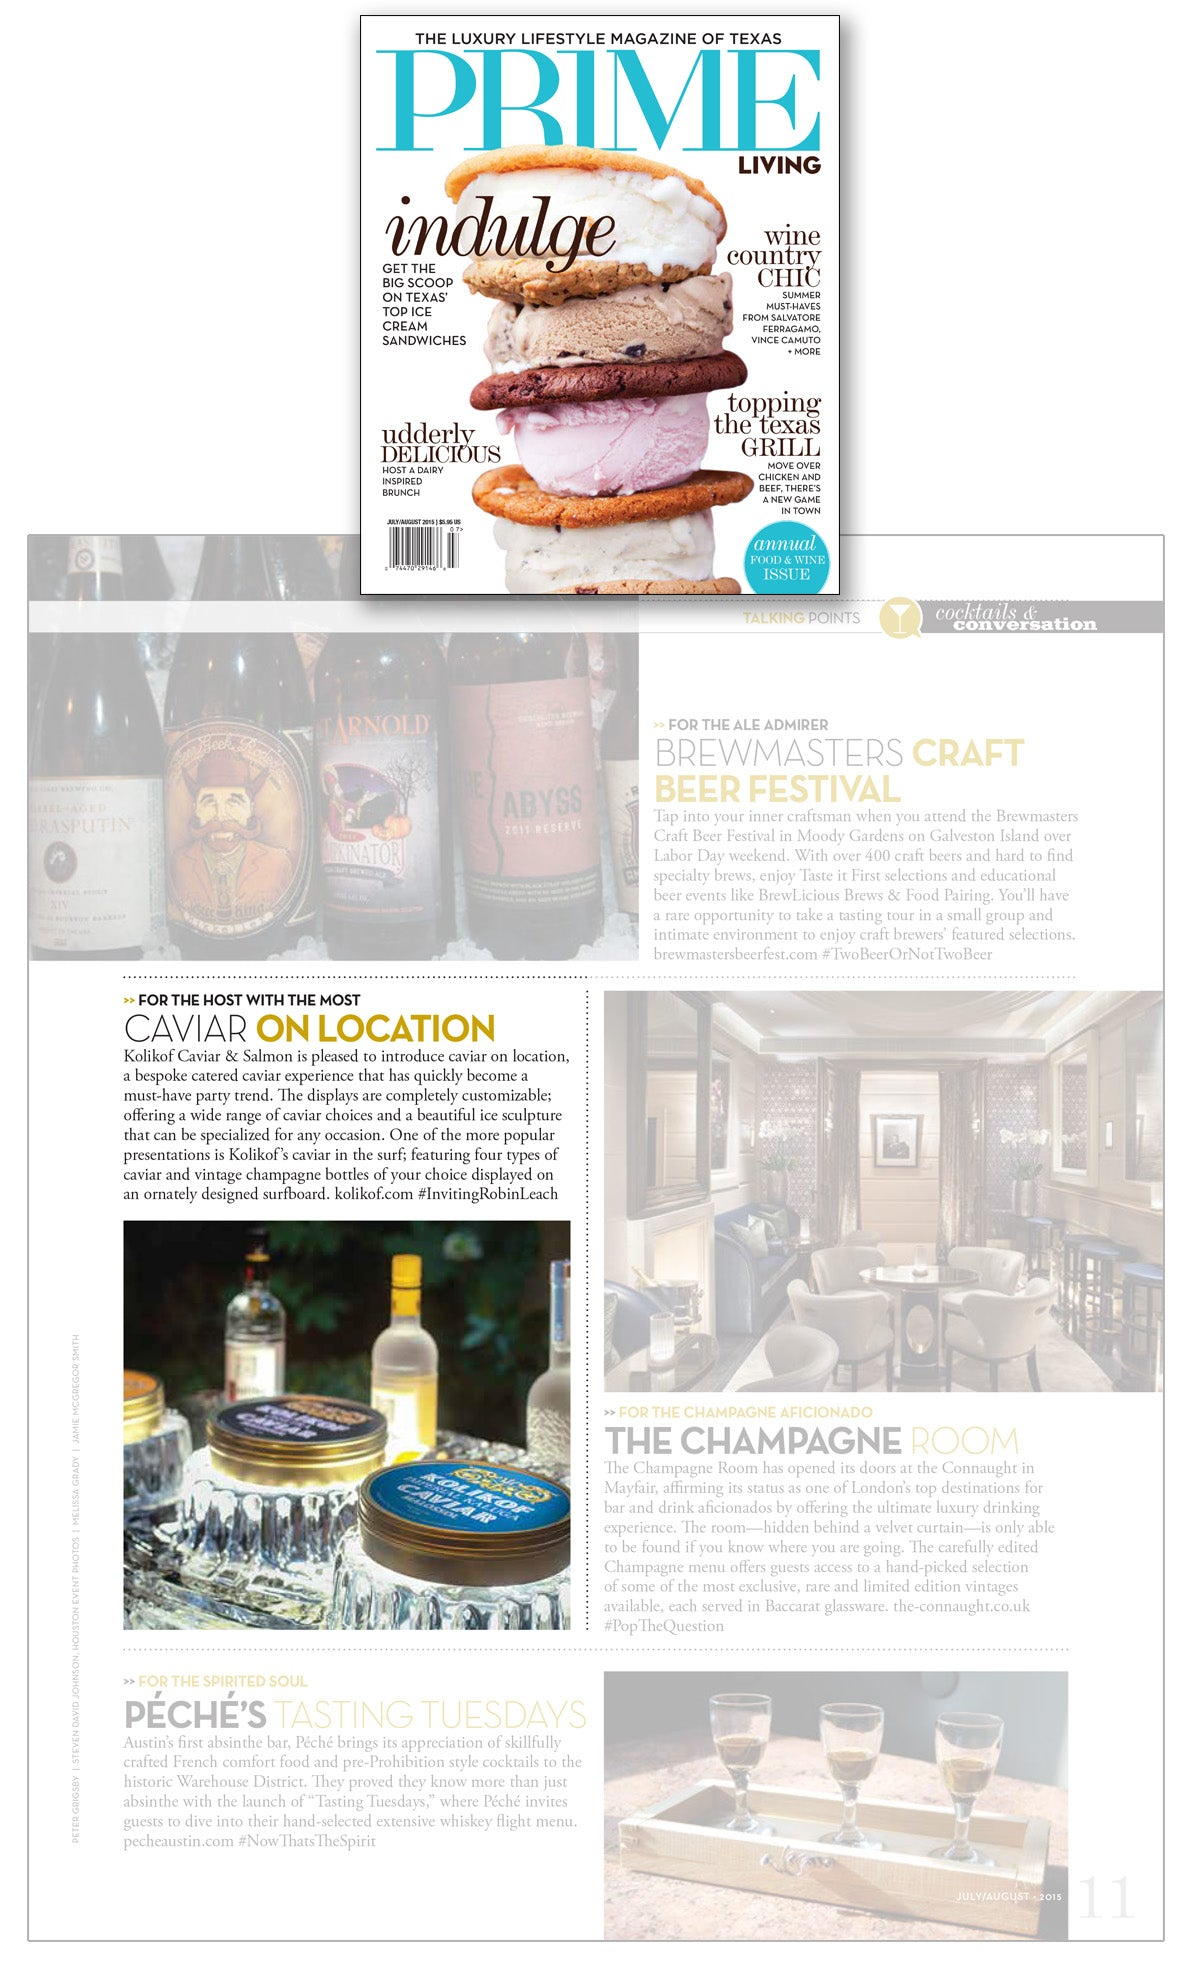 Prime Living Magazine features Kolikof Caviar